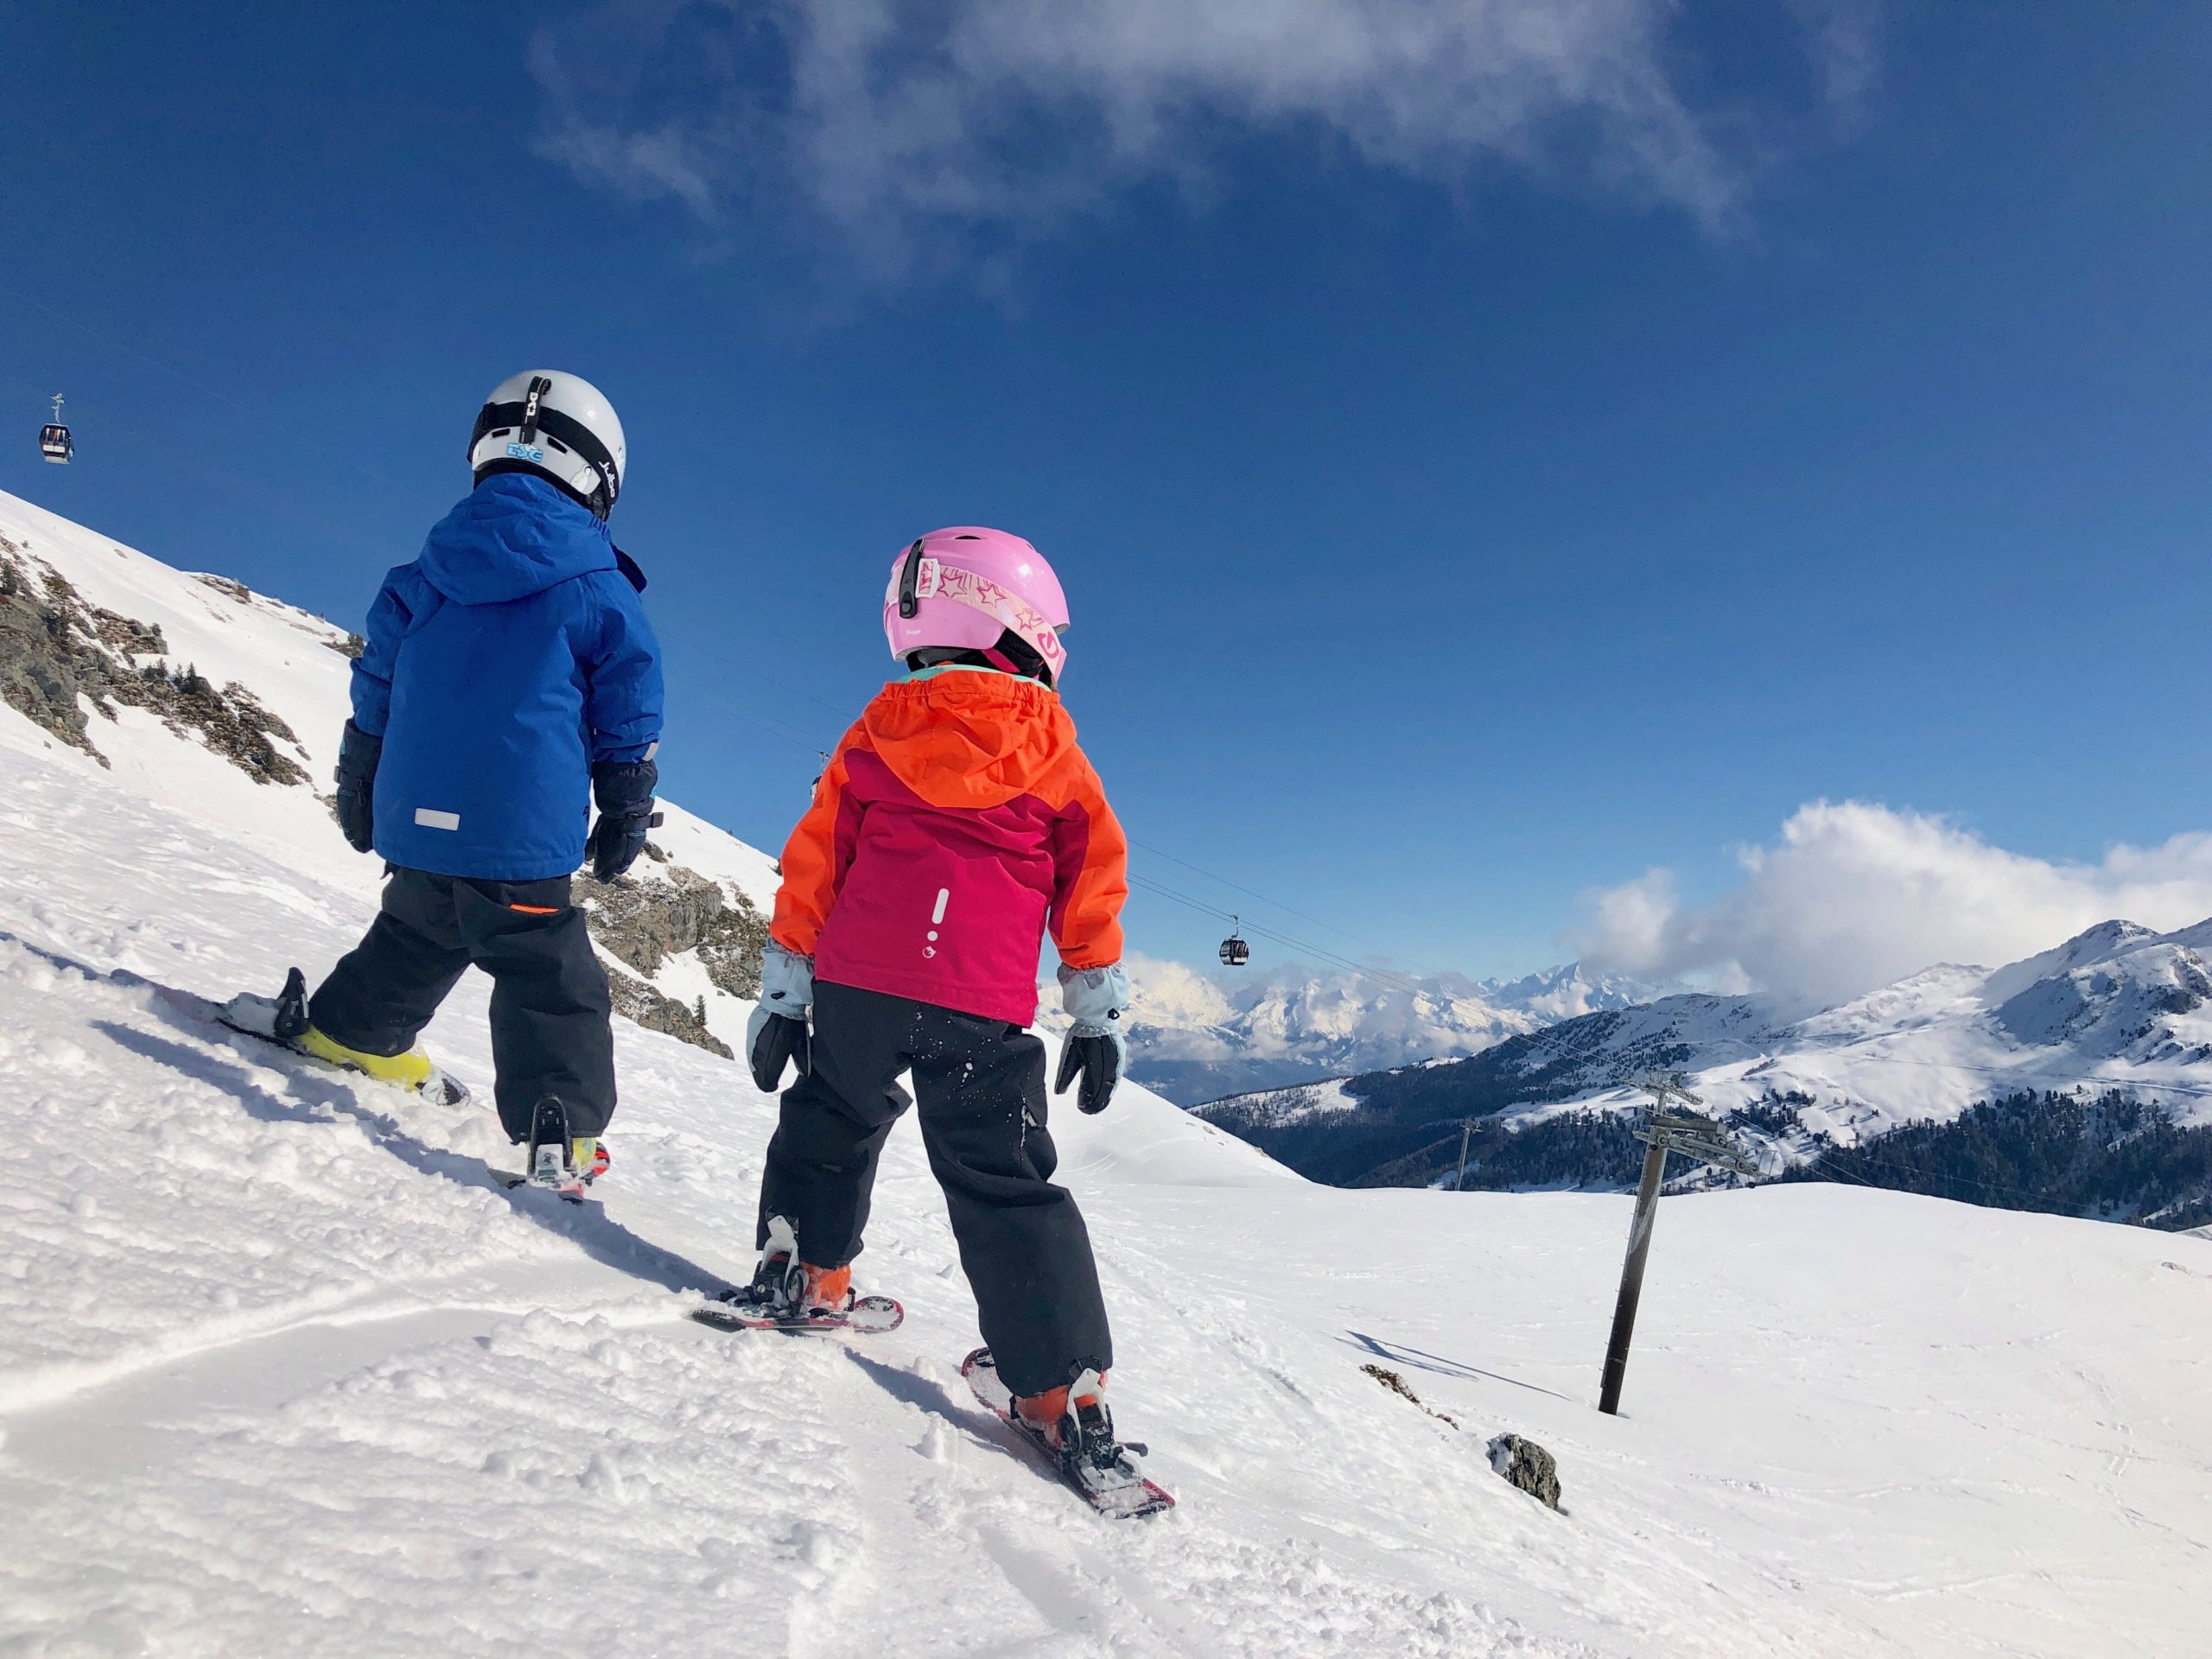 picture of boy and girl facing away from the camera towards the slopes wearing skis, gloves, a red and blue jacket and pink and white helmet